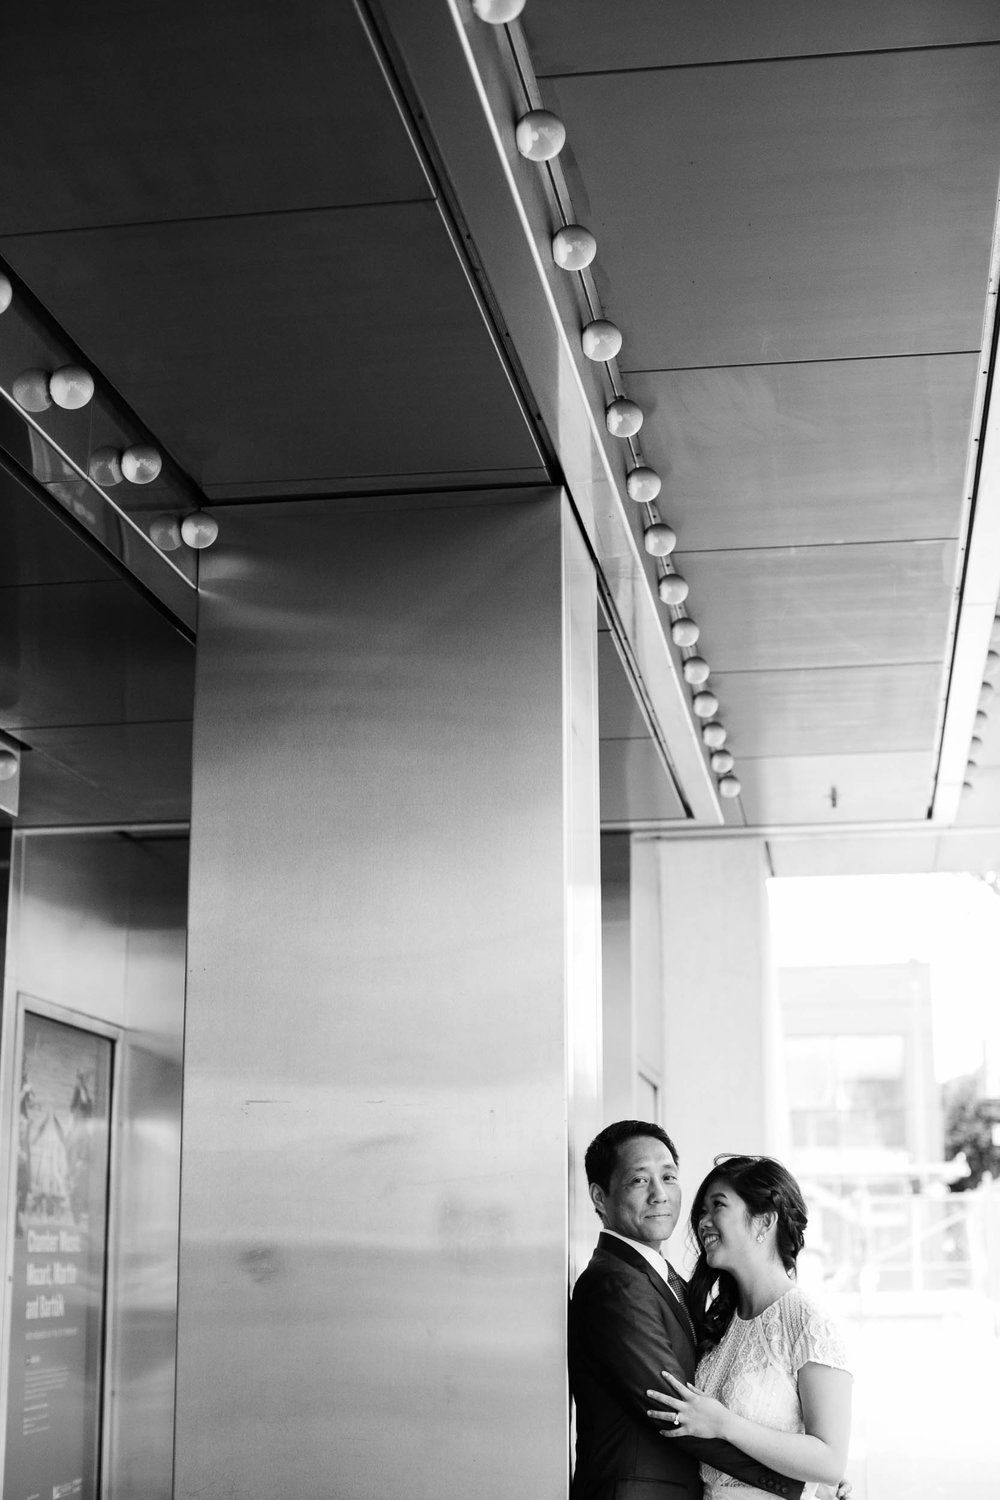 032118_M+D City Hall Wedding_Buena Lane Photography_1087.jpg